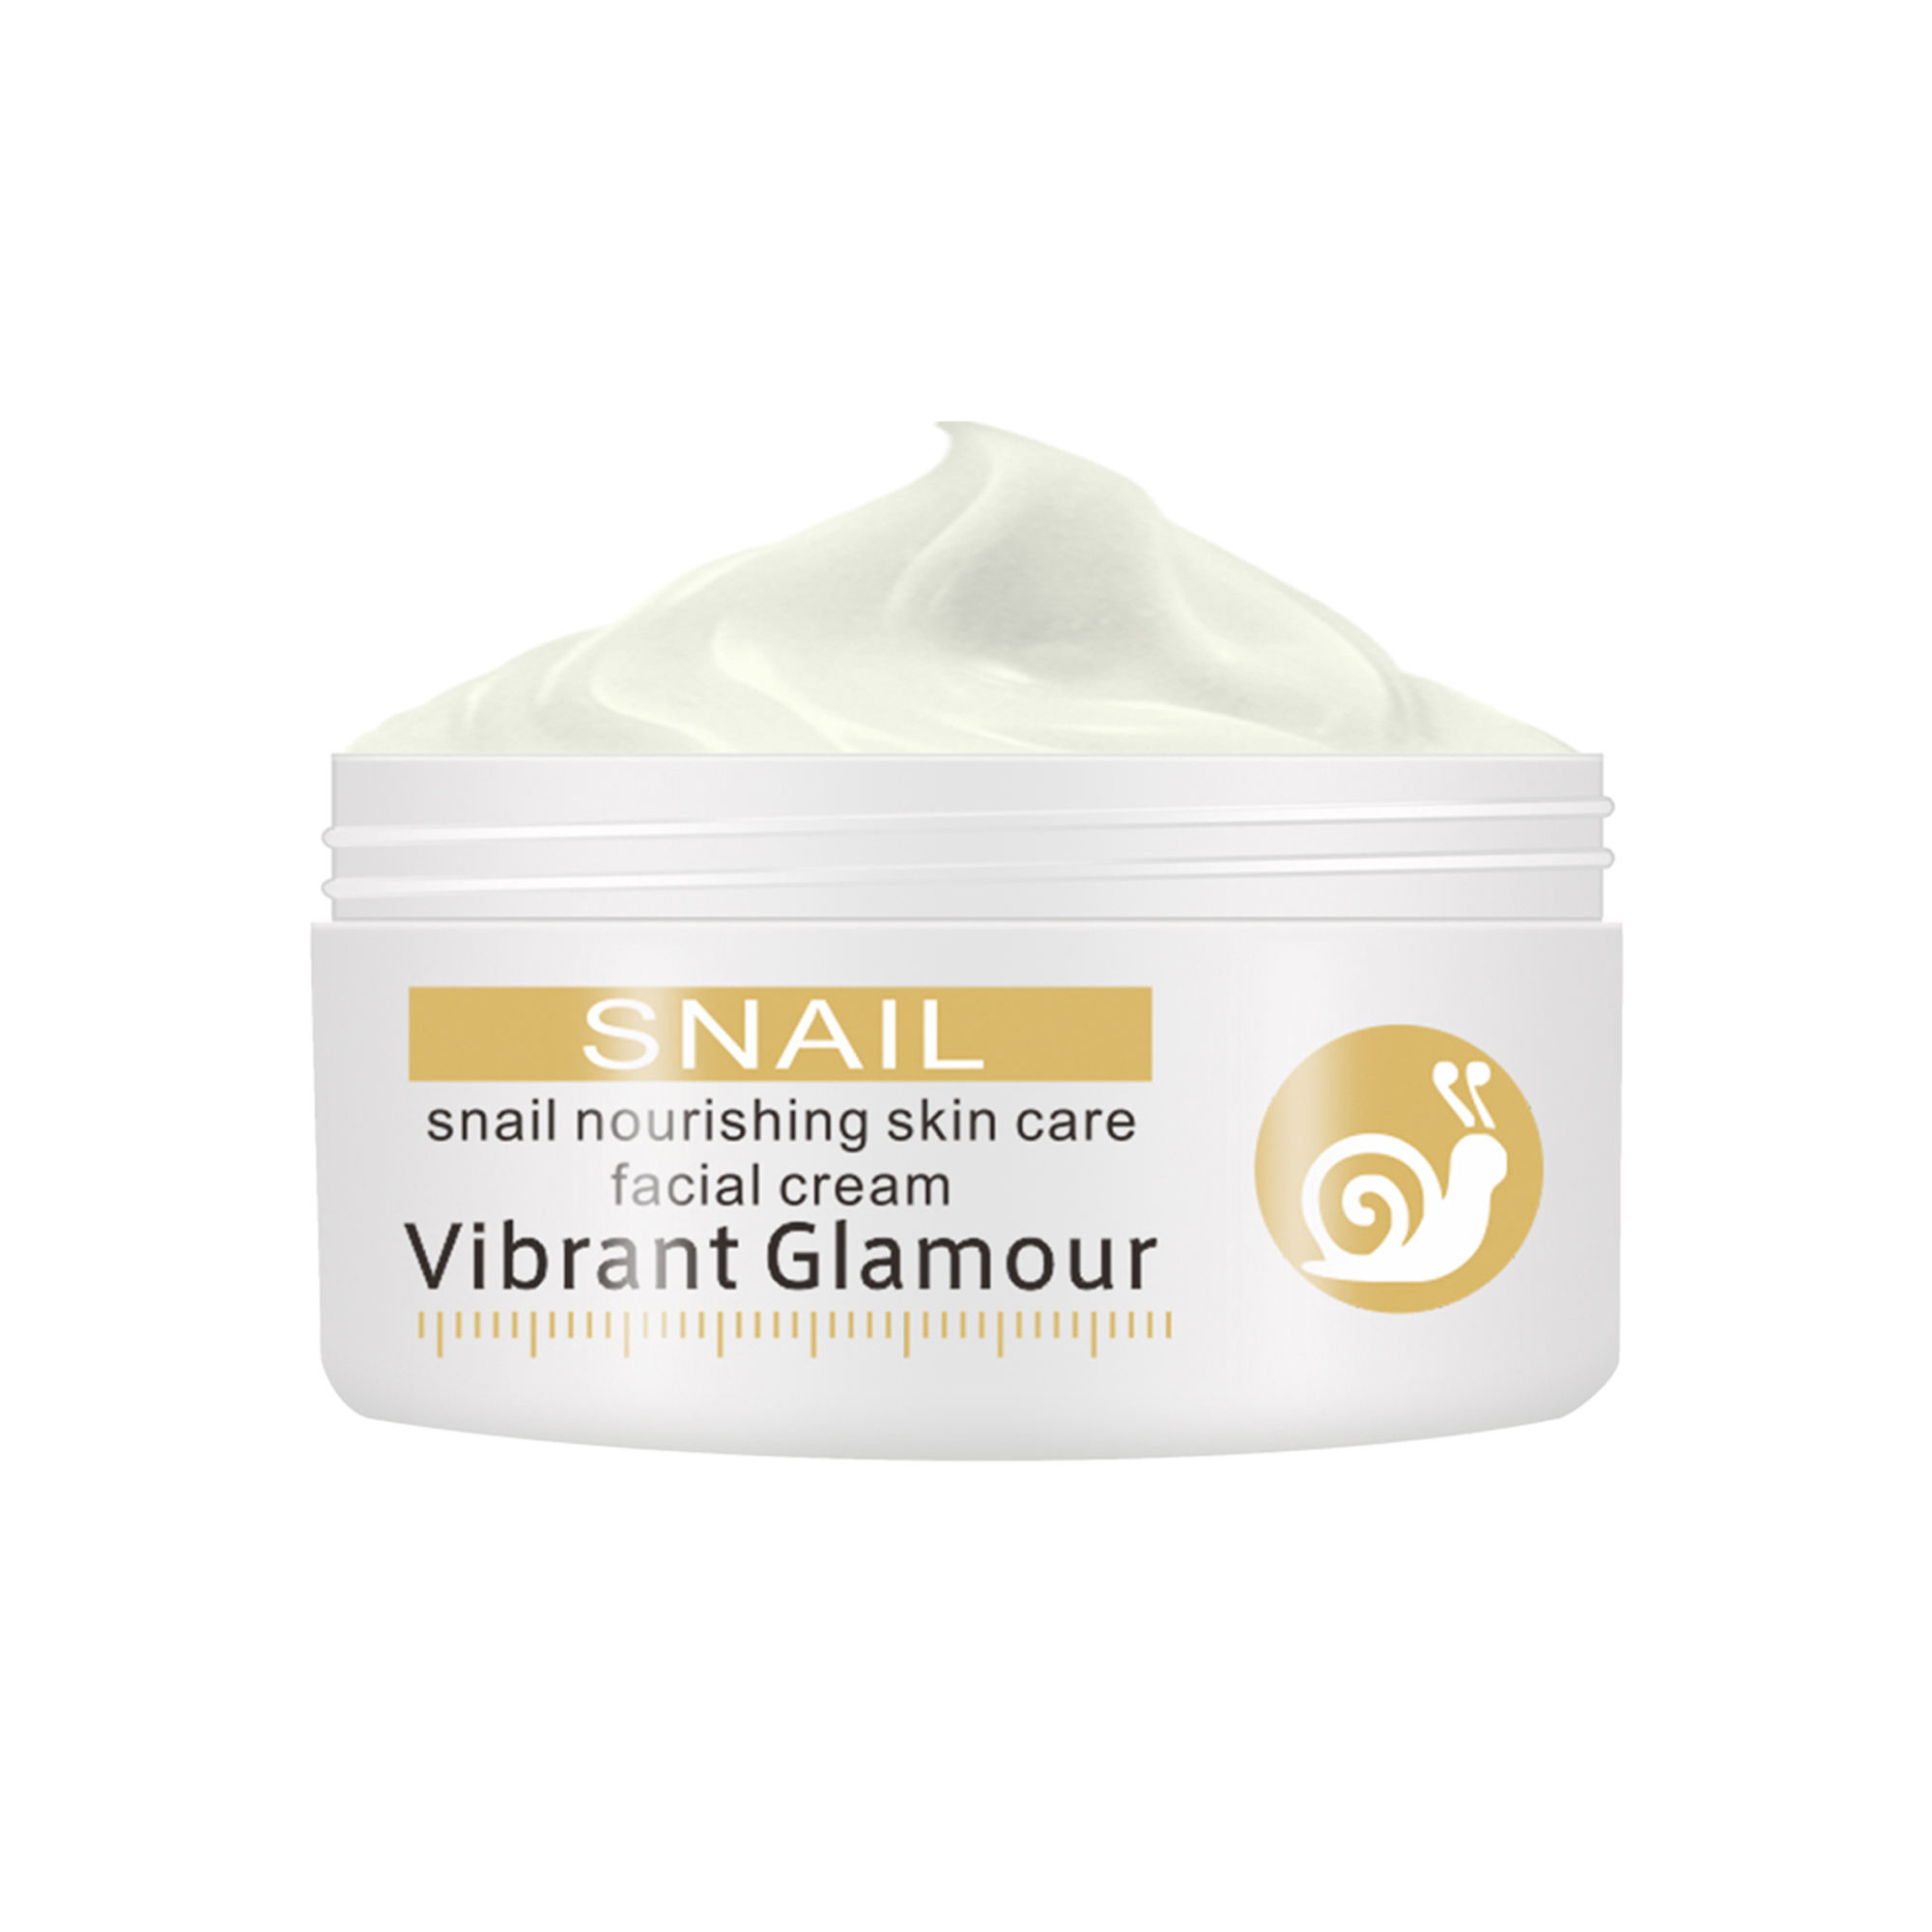 Snail Nourishing Skin Care Facial Cream Whitening Moisturizing Anti Aging Anti Wrinkle Snail Serum Day Cream